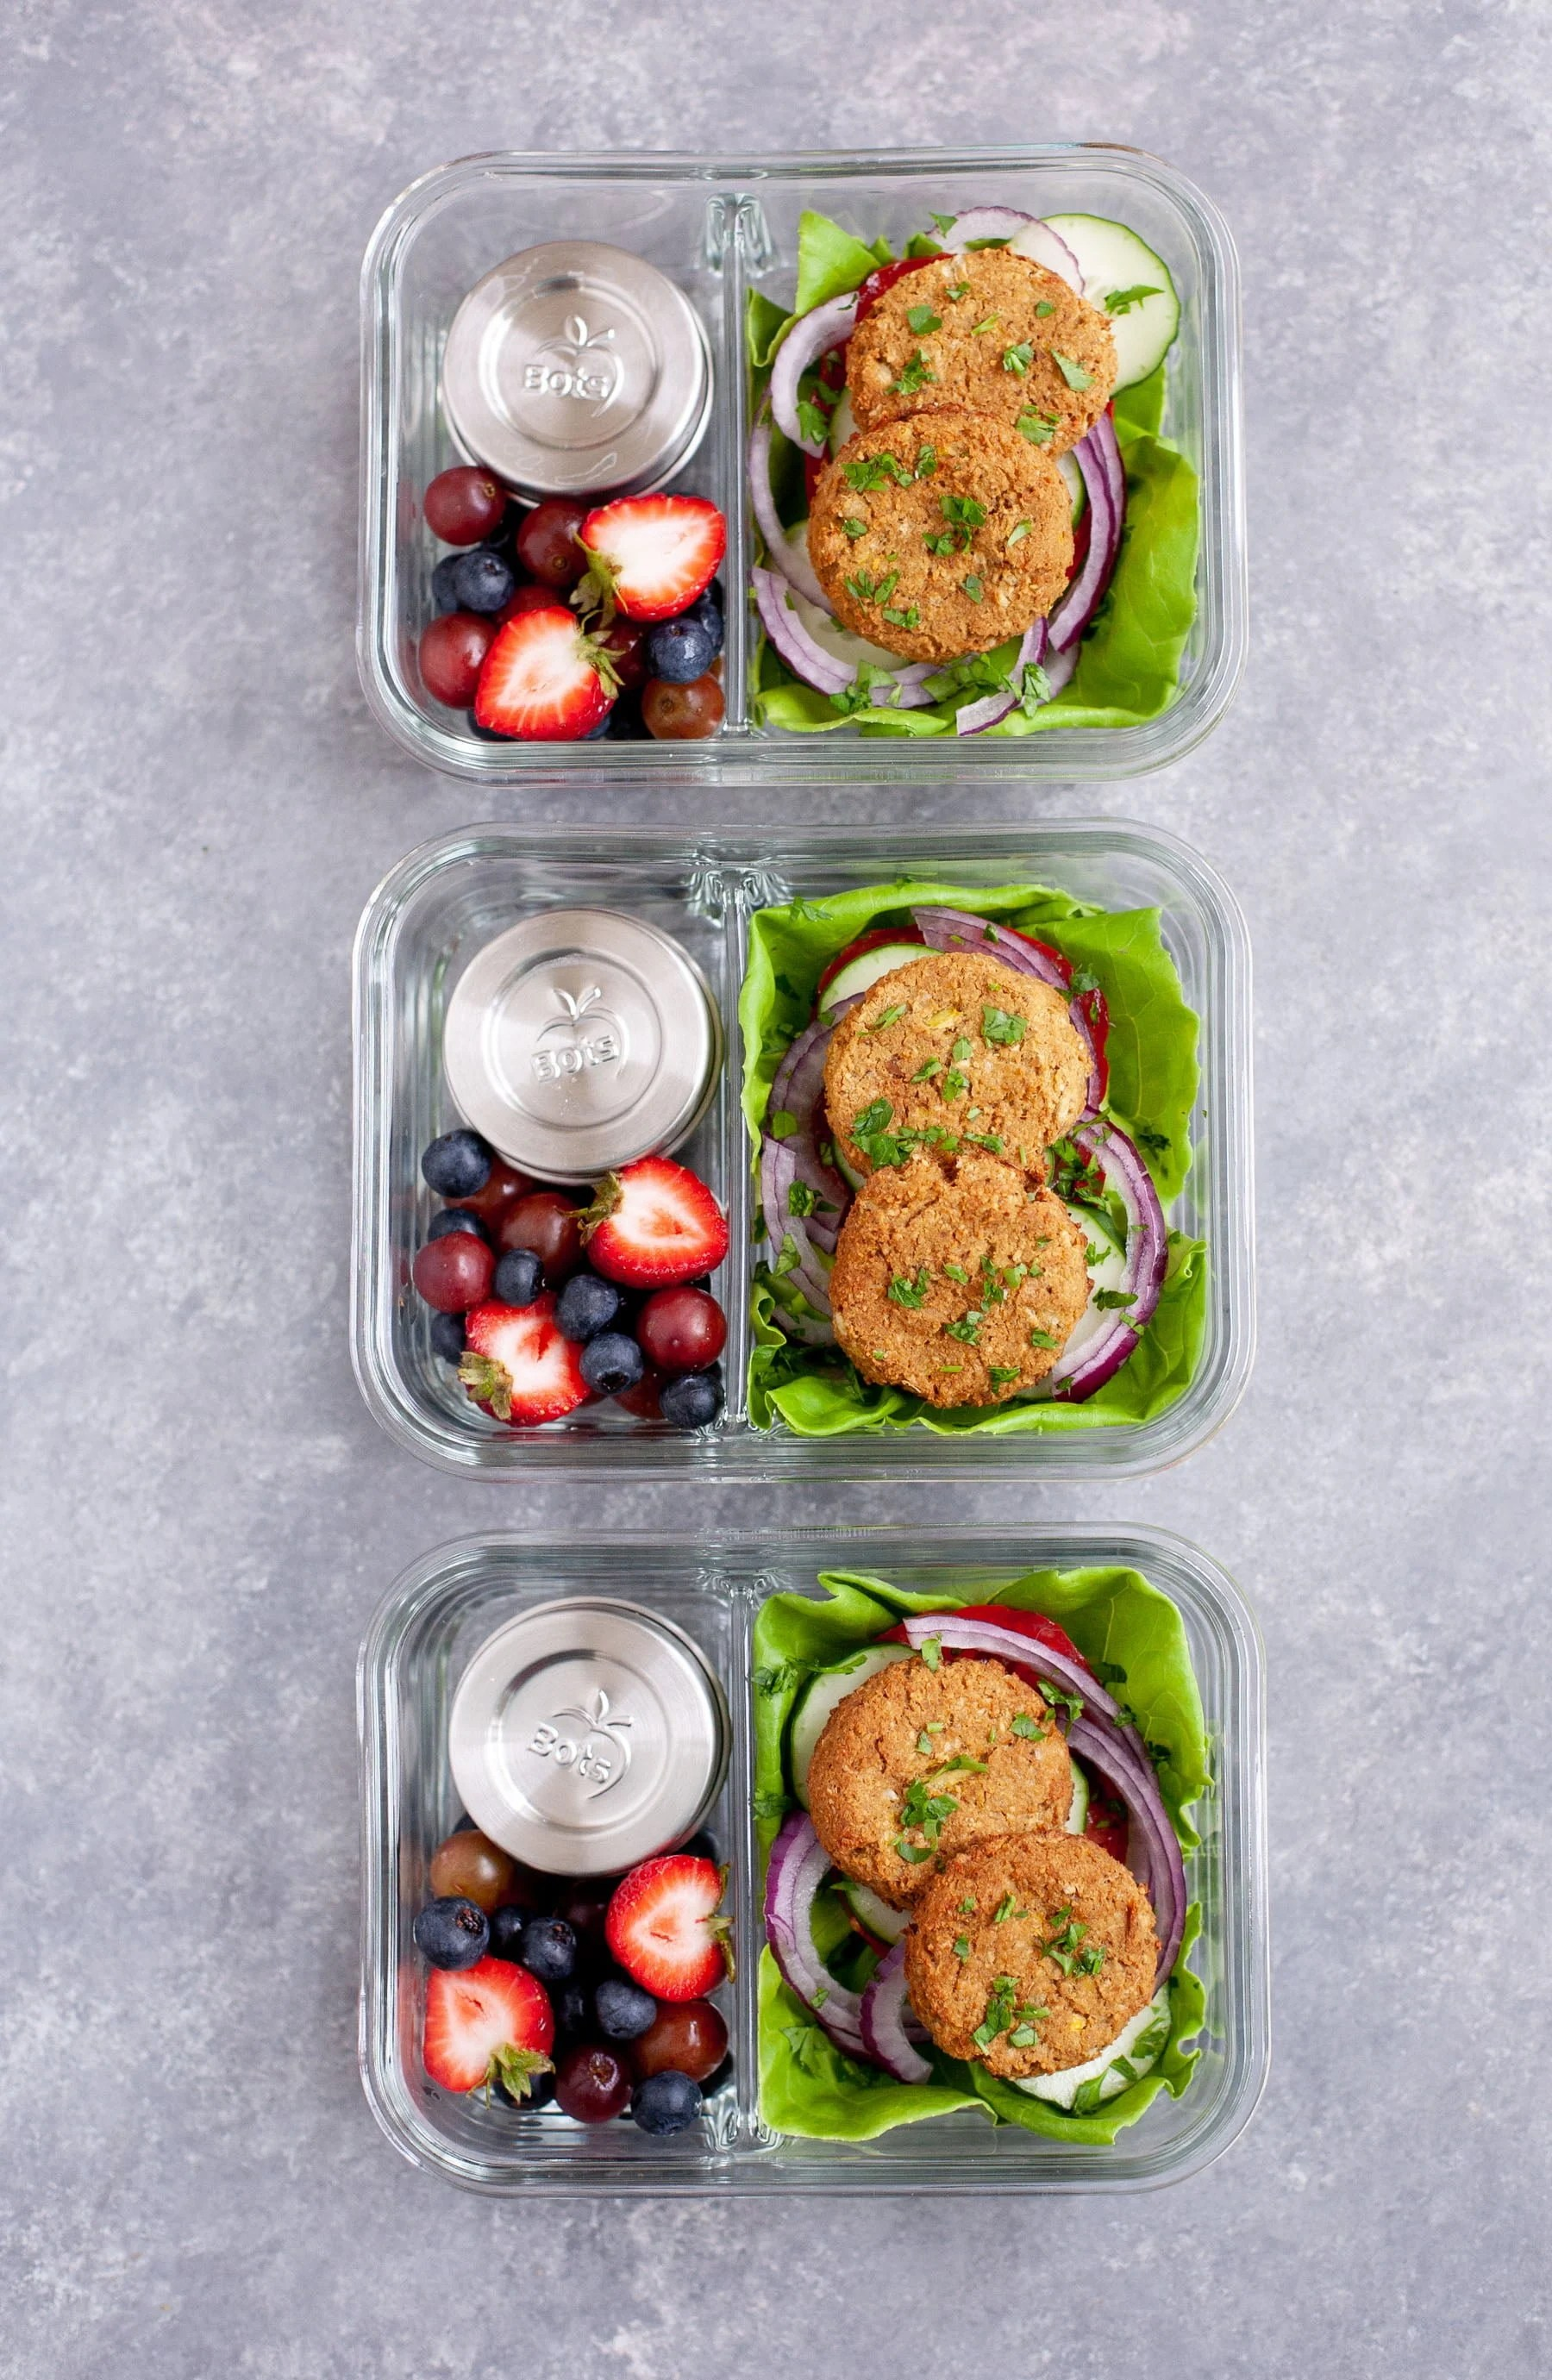 Meal Prep Baked Falafel Lettuce Wraps packed into glass lunch containers with mixed berries and small containers of tahini sauce